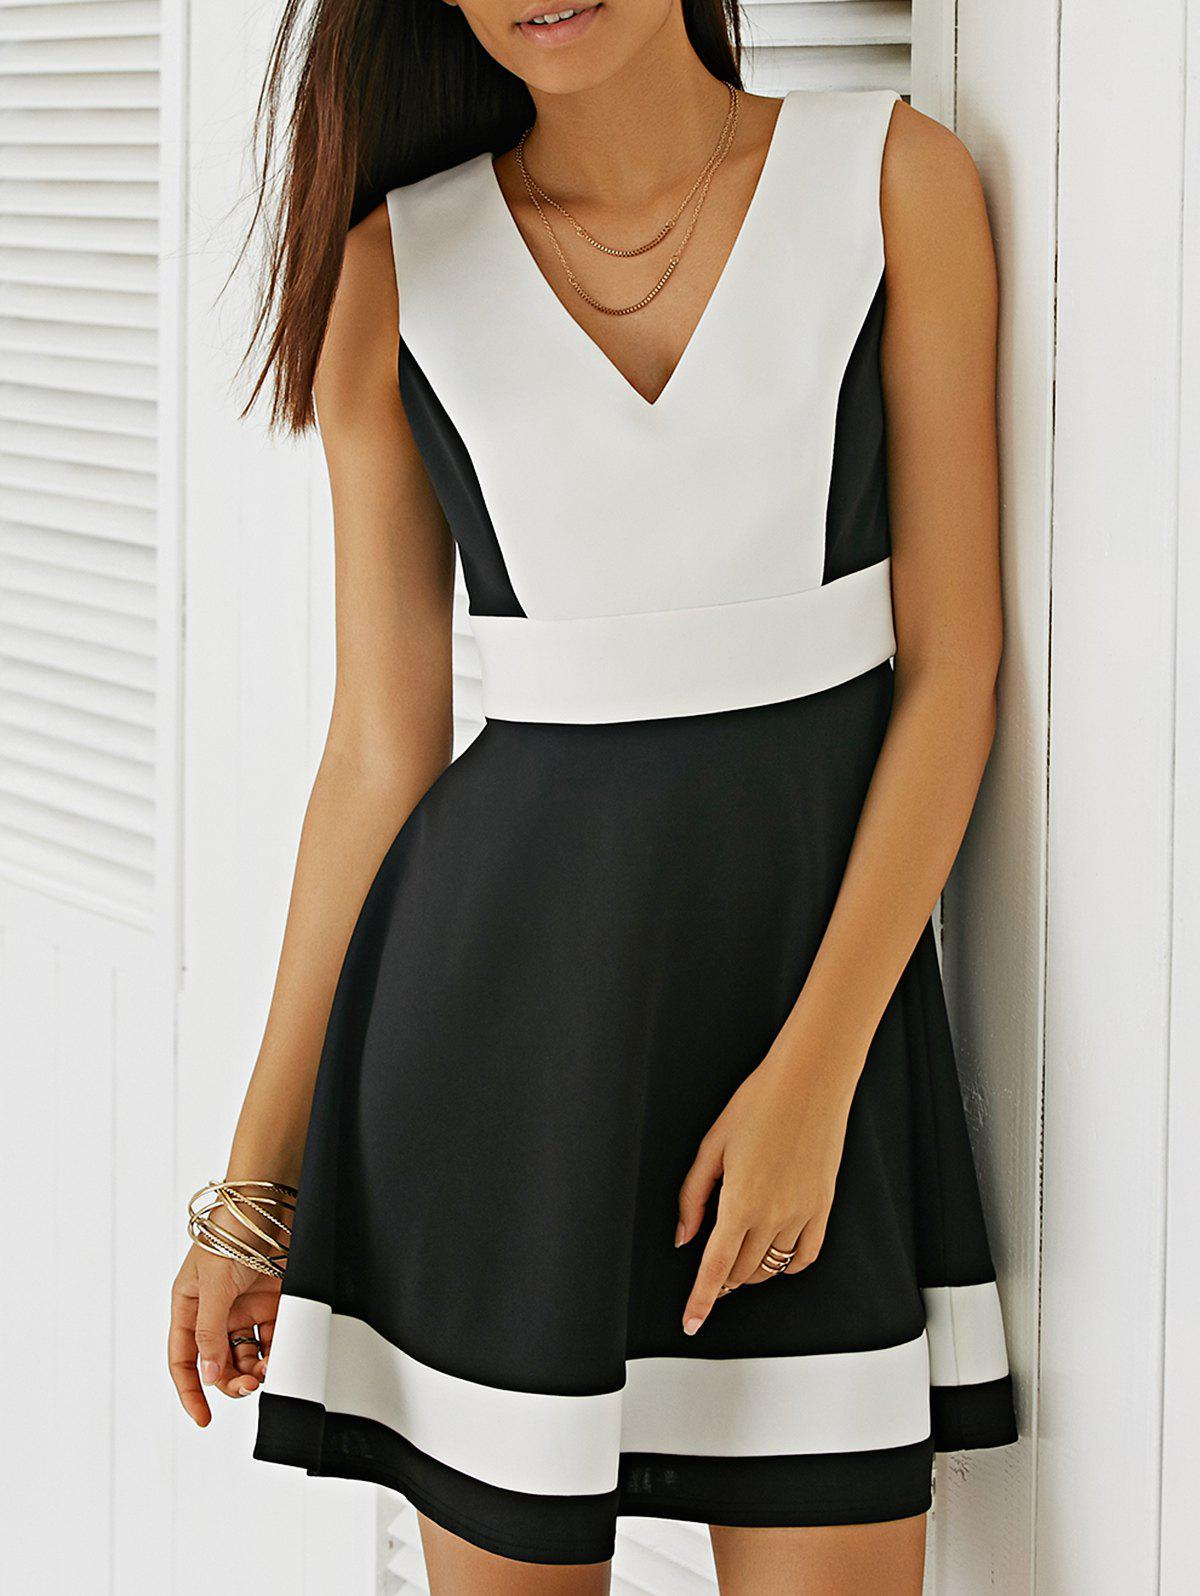 Sweet Color Block Fit and Flare Dress - WHITE/BLACK S